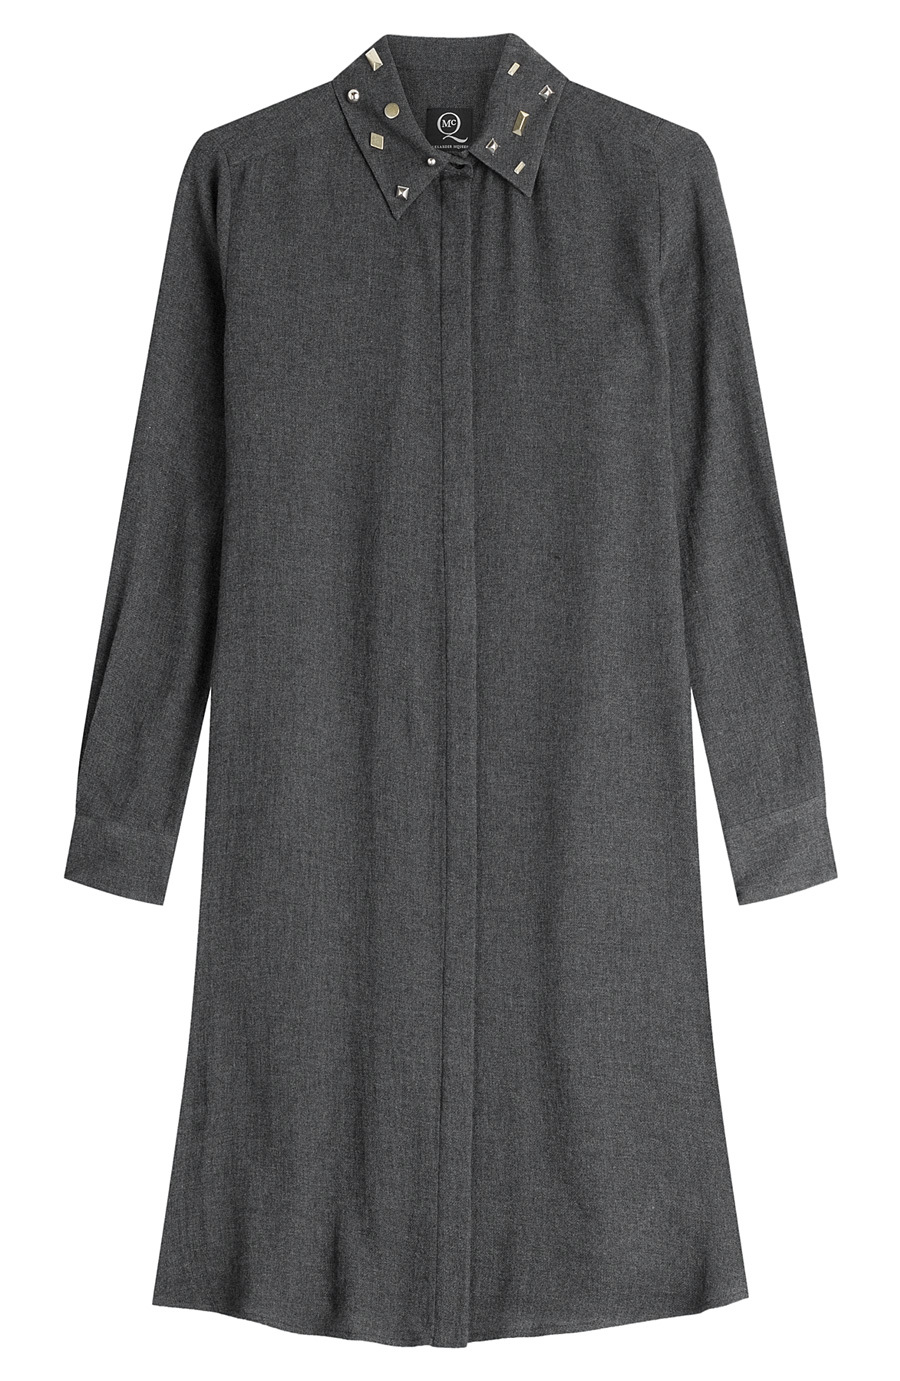 Shirt Dress With Wool - style: shirt; neckline: shirt collar/peter pan/zip with opening; pattern: plain; predominant colour: denim; occasions: casual, creative work; length: just above the knee; fit: straight cut; fibres: wool - mix; sleeve length: long sleeve; sleeve style: standard; pattern type: fabric; texture group: woven light midweight; embellishment: studs; season: a/w 2015; wardrobe: highlight; embellishment location: neck